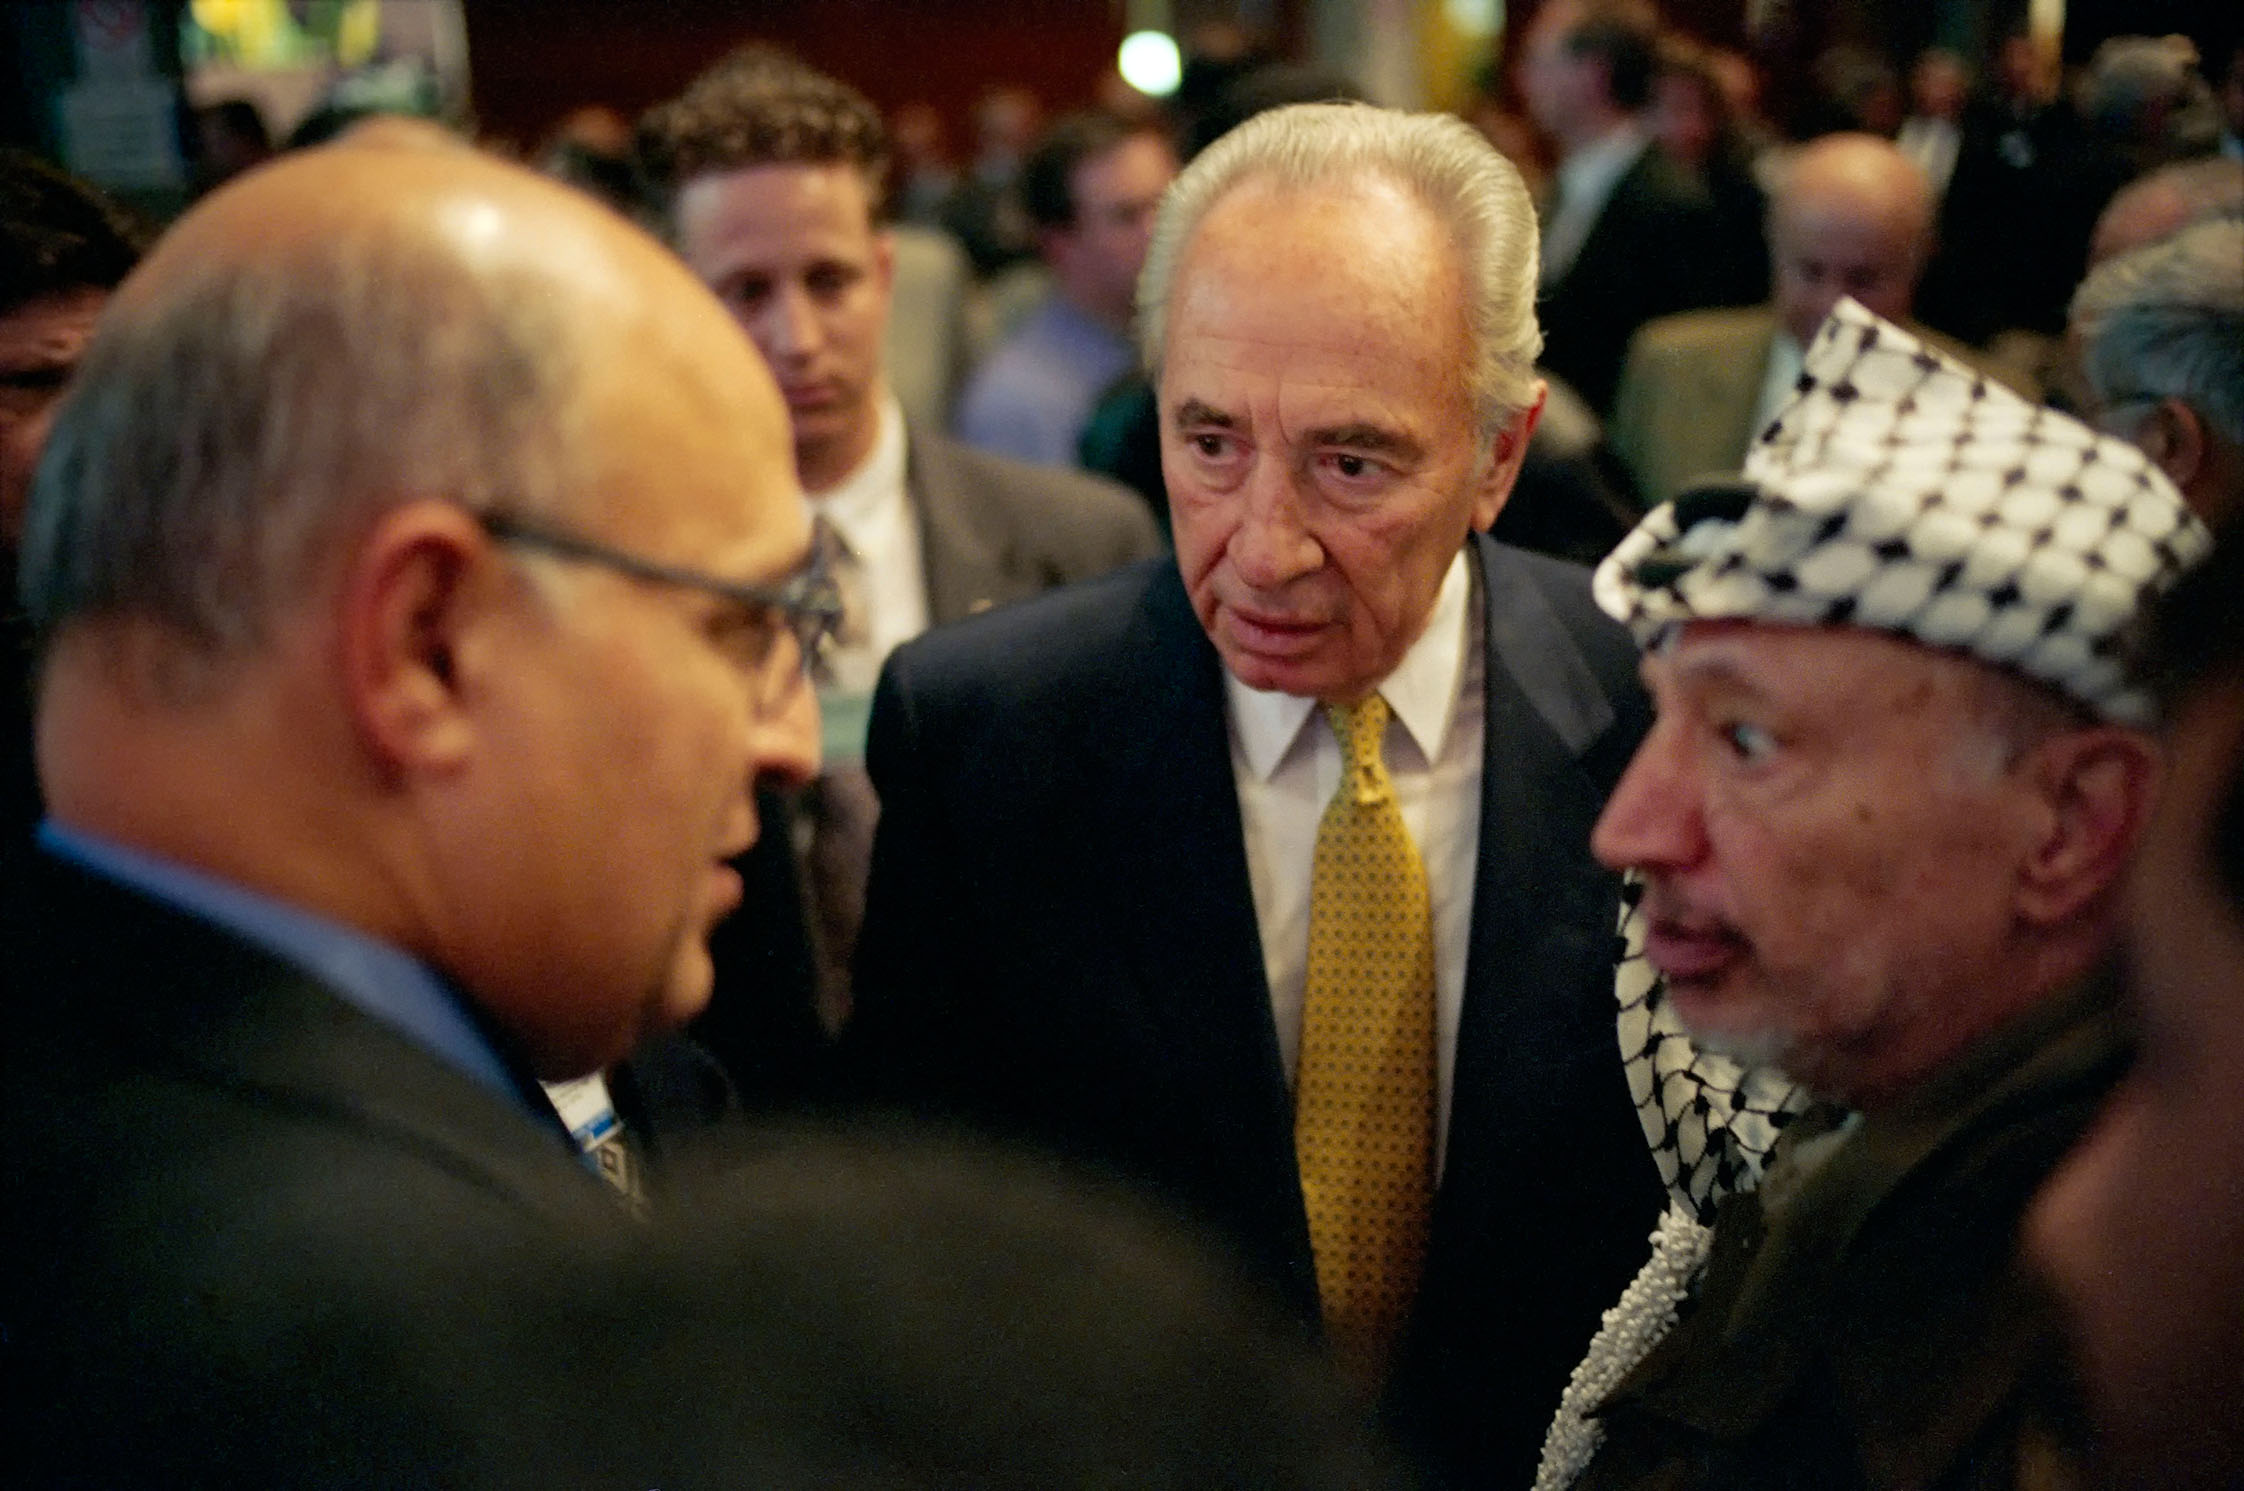 Nabil Sha\'ath (Palestinian Minister of Planning and Int\'l Cooperation), Shimon Peres (former PM of Israel) and Yasser Arafat (PNA).Contact email:New York : photography@magnumphotos.comParis : magnum@magnumphotos.frLondon : magnum@magnumphotos.co.ukTokyo : tokyo@magnumphotos.co.jpContact phones:New York : +1 212 929 6000Paris: + 33 1 53 42 50 00London: + 44 20 7490 1771Tokyo: + 81 3 3219 0771Image URL:http://www.magnumphotos.com/Archive/C.aspx?VP3=ViewBox_VPage&IID=2S5RYDKPWU1&CT=Image&IT=ZoomImage01_VForm